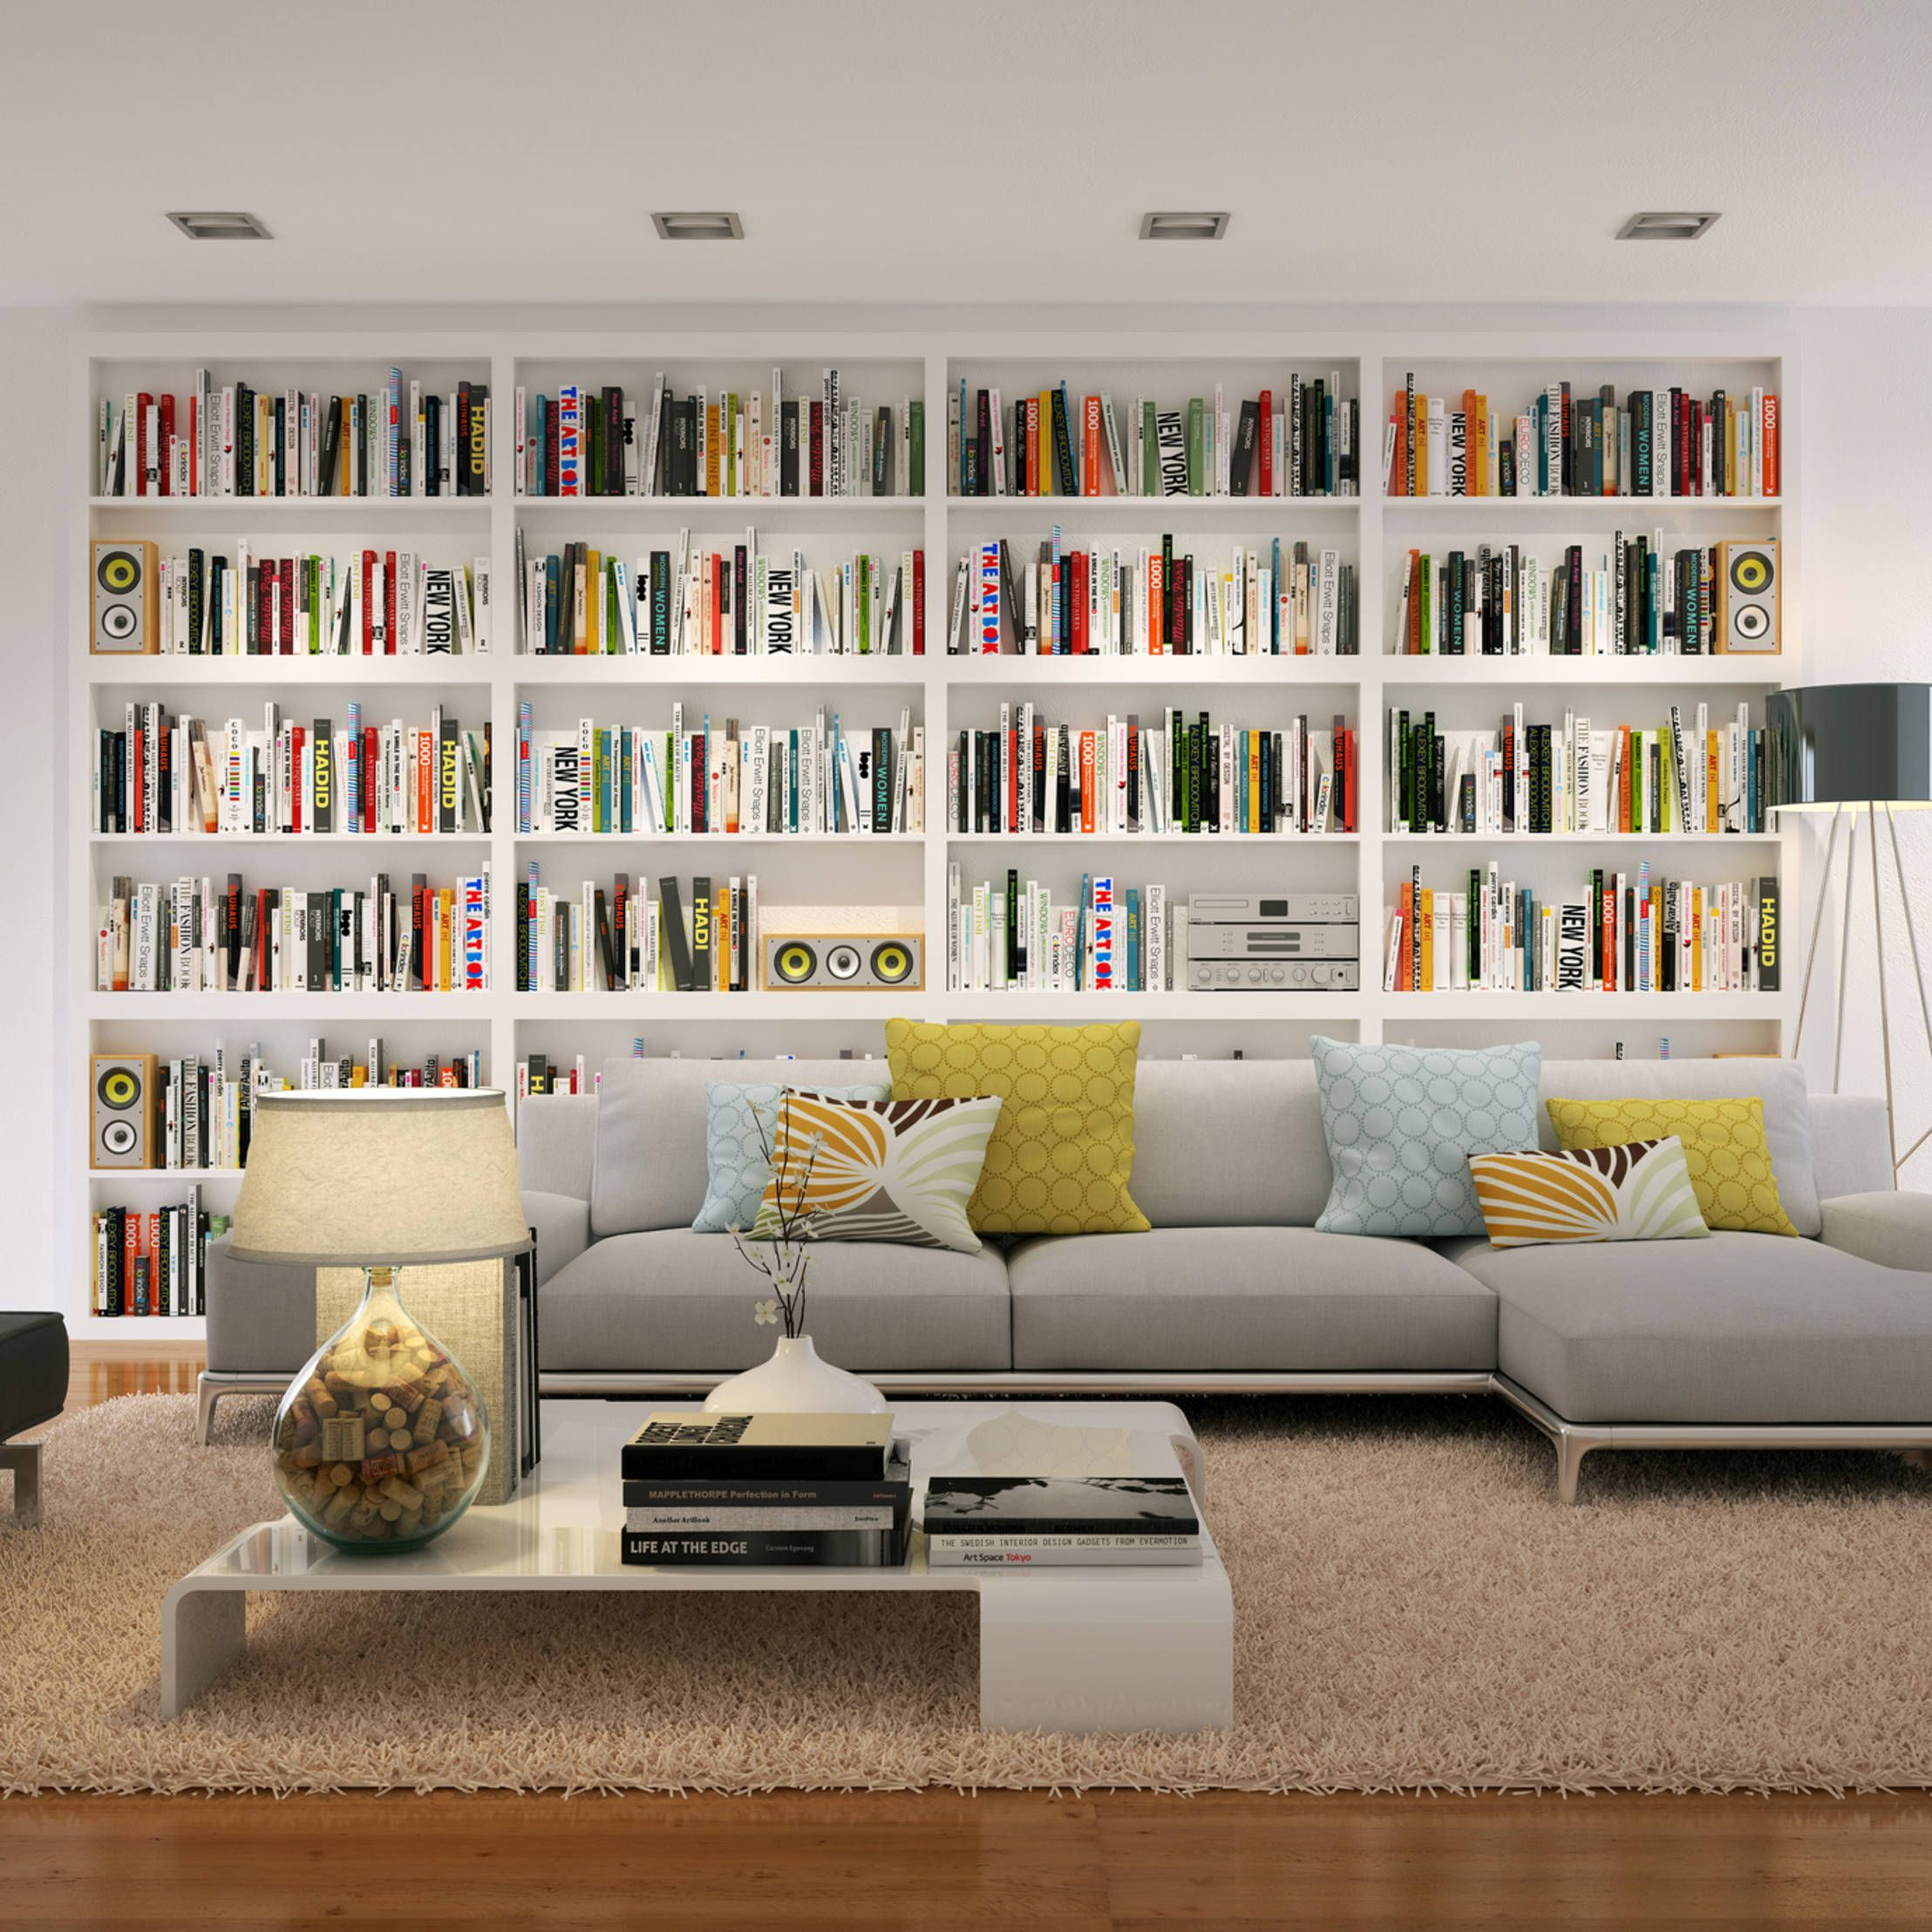 8 Chairs You Ll Want To Sit On Home Library Rooms Home Library Design Bookshelves In Living Room Beautiful living room bookshelf